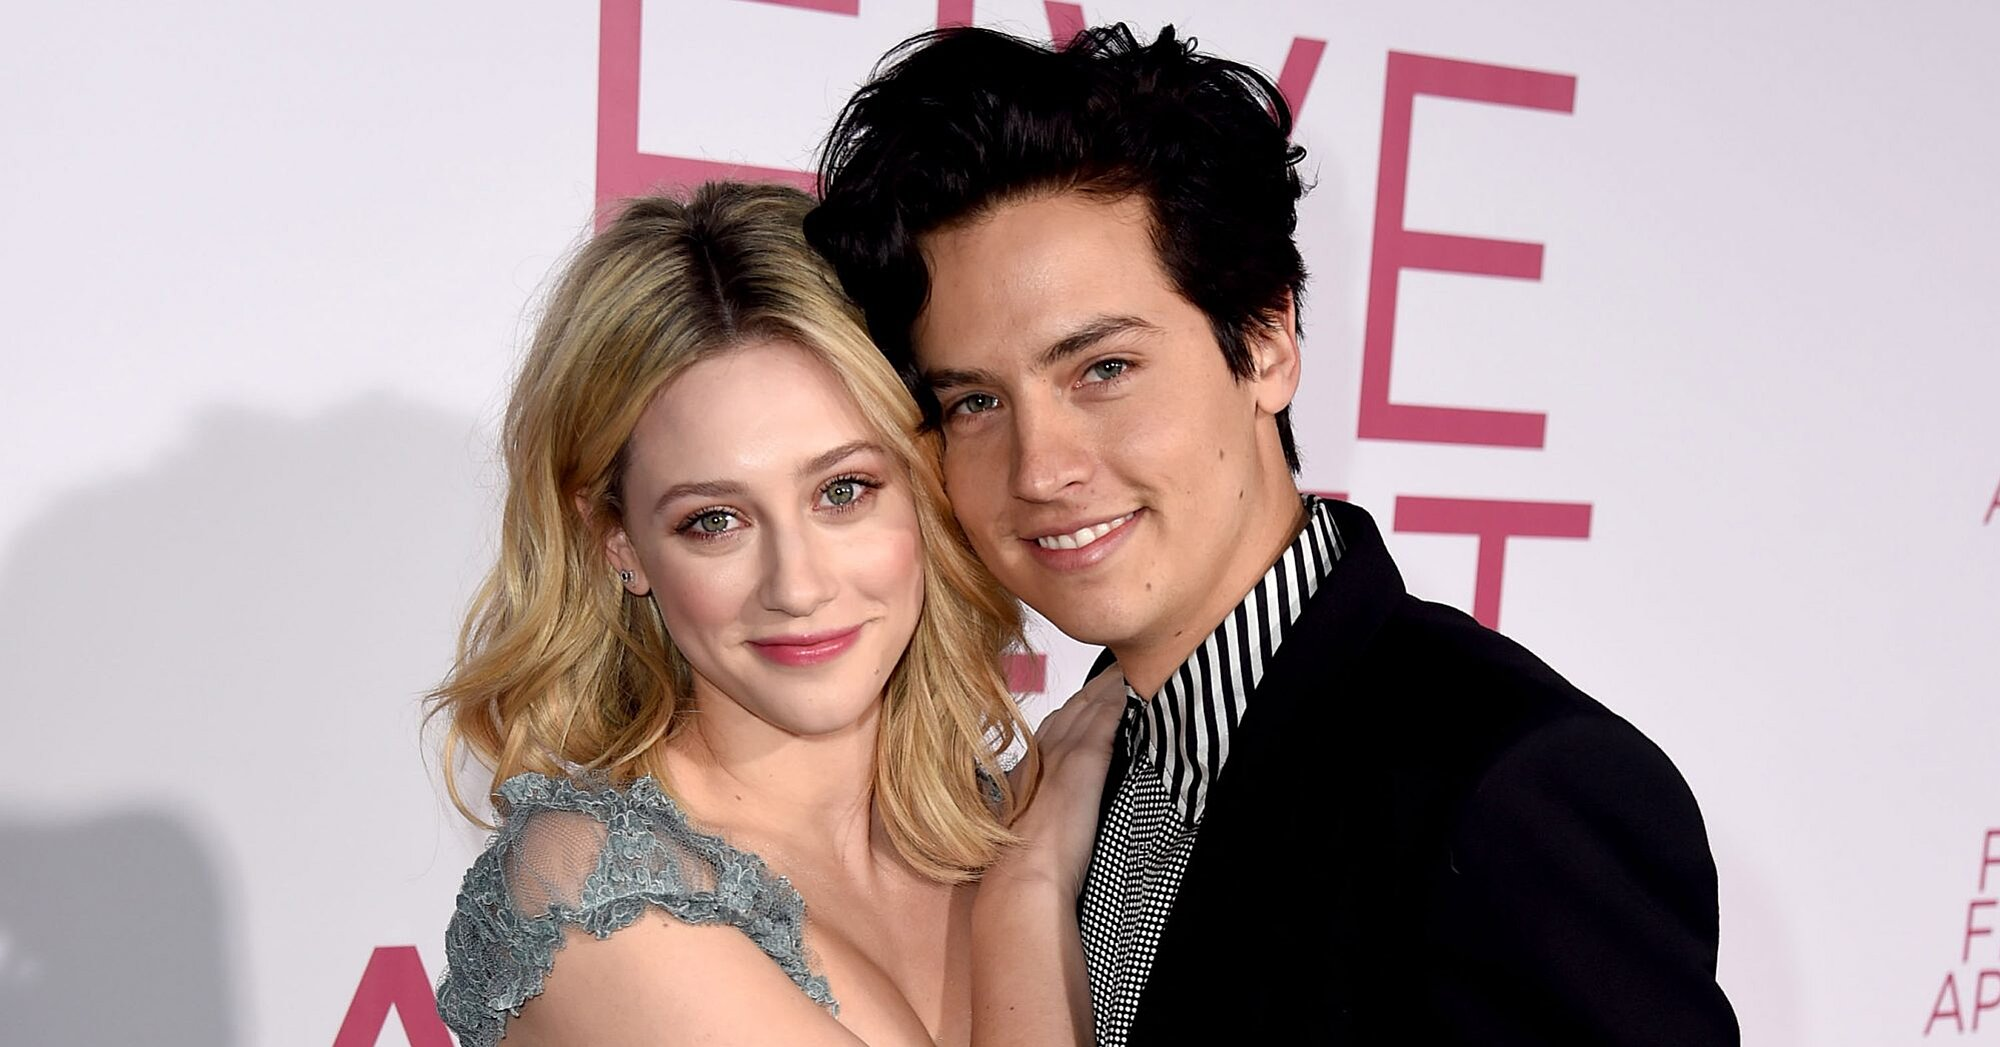 'Riverdale' stars Cole Sprouse and Lili Reinhart reportedly split again